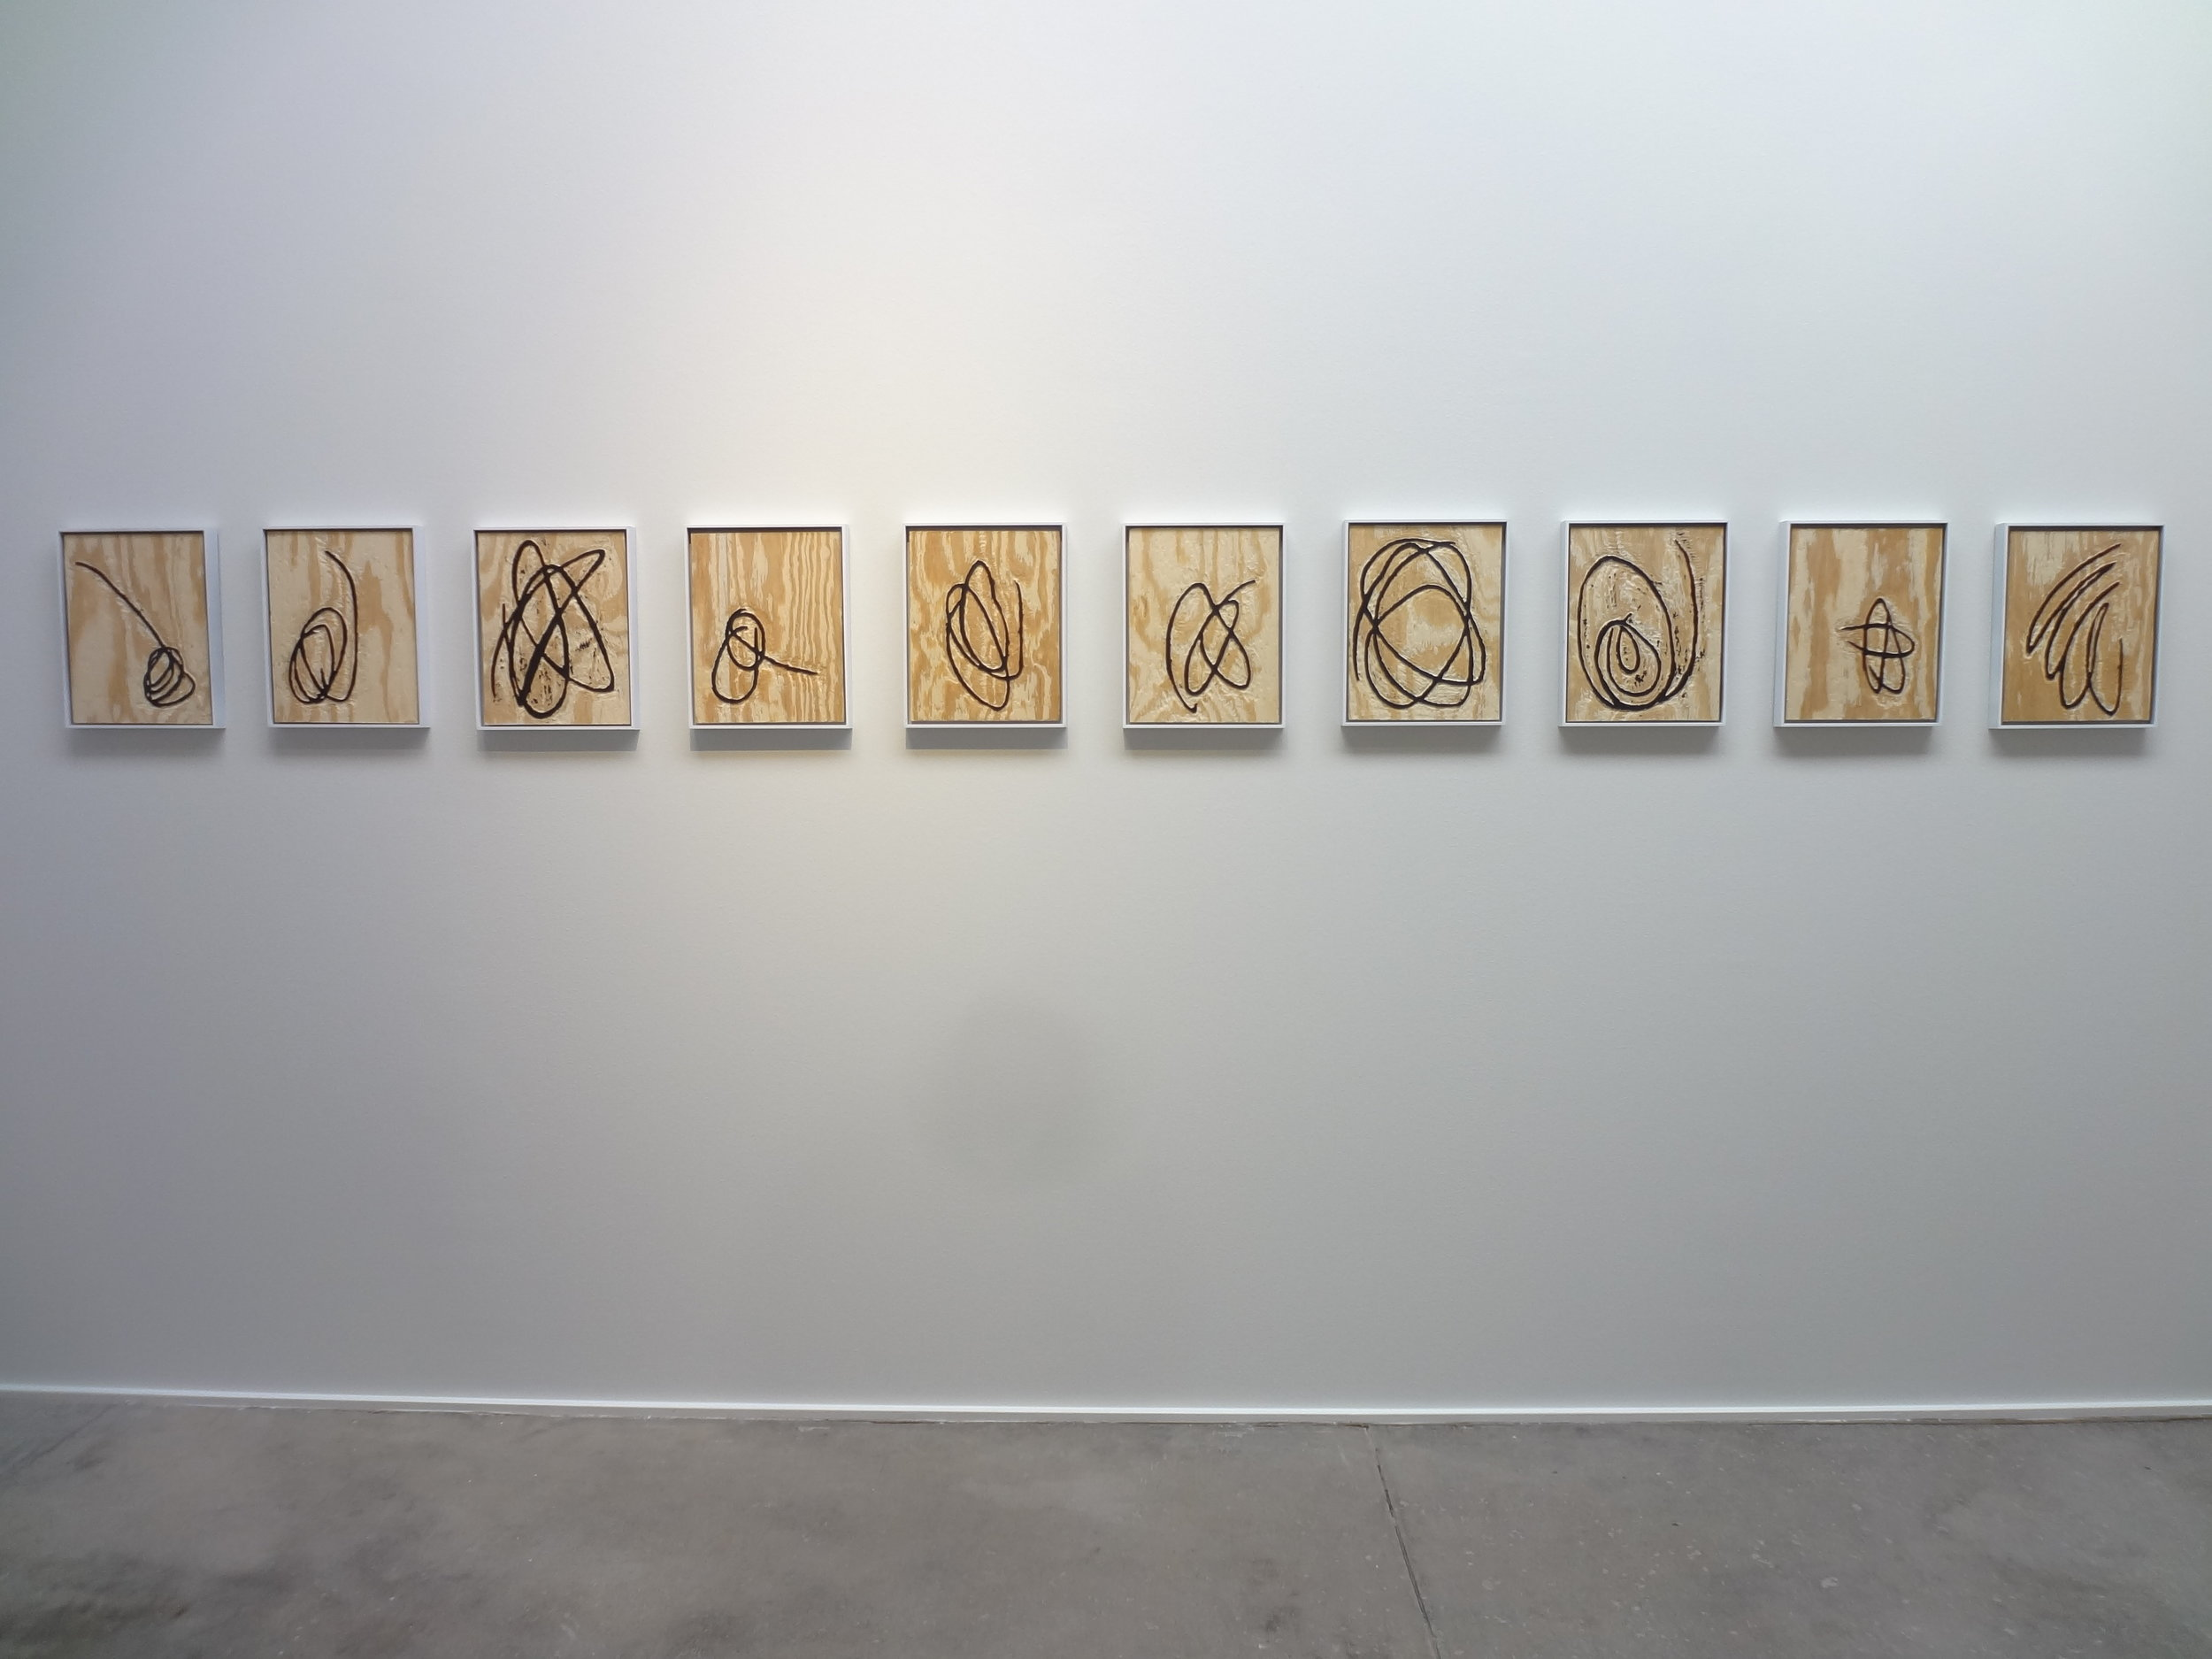 Meghan Gerety Installation View  Untitled , 2015 blockprint ink on plywood  15 x 12 in.each framed in aluminum